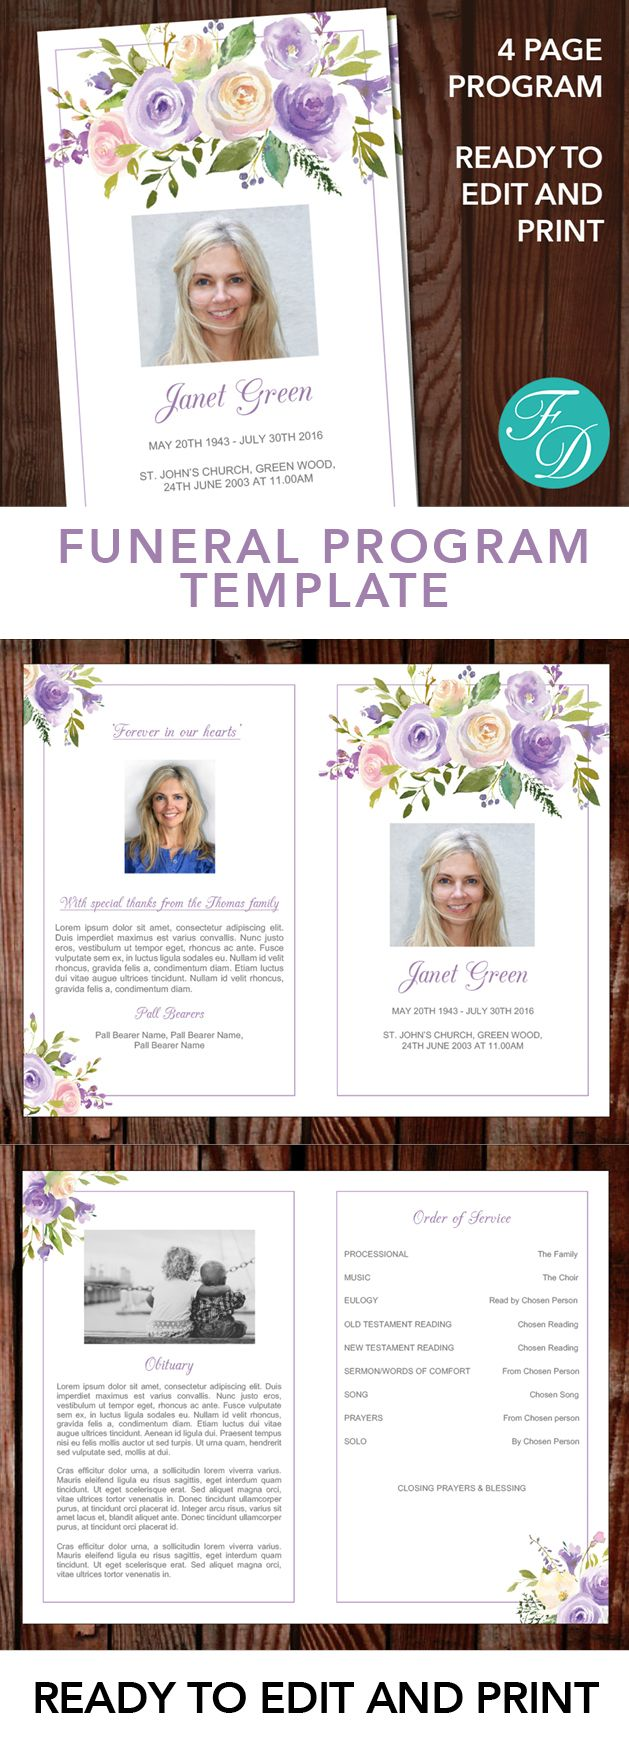 Floral Printable Funeral program ready to edit & print. Simply purchase your funeral templates, download, edit with Microsoft Word and print. #obituarytemplate #memorialprogram #funeralprograms #funeraltemplate #printableprogram #celebrationoflife #funeralprogamtemplates